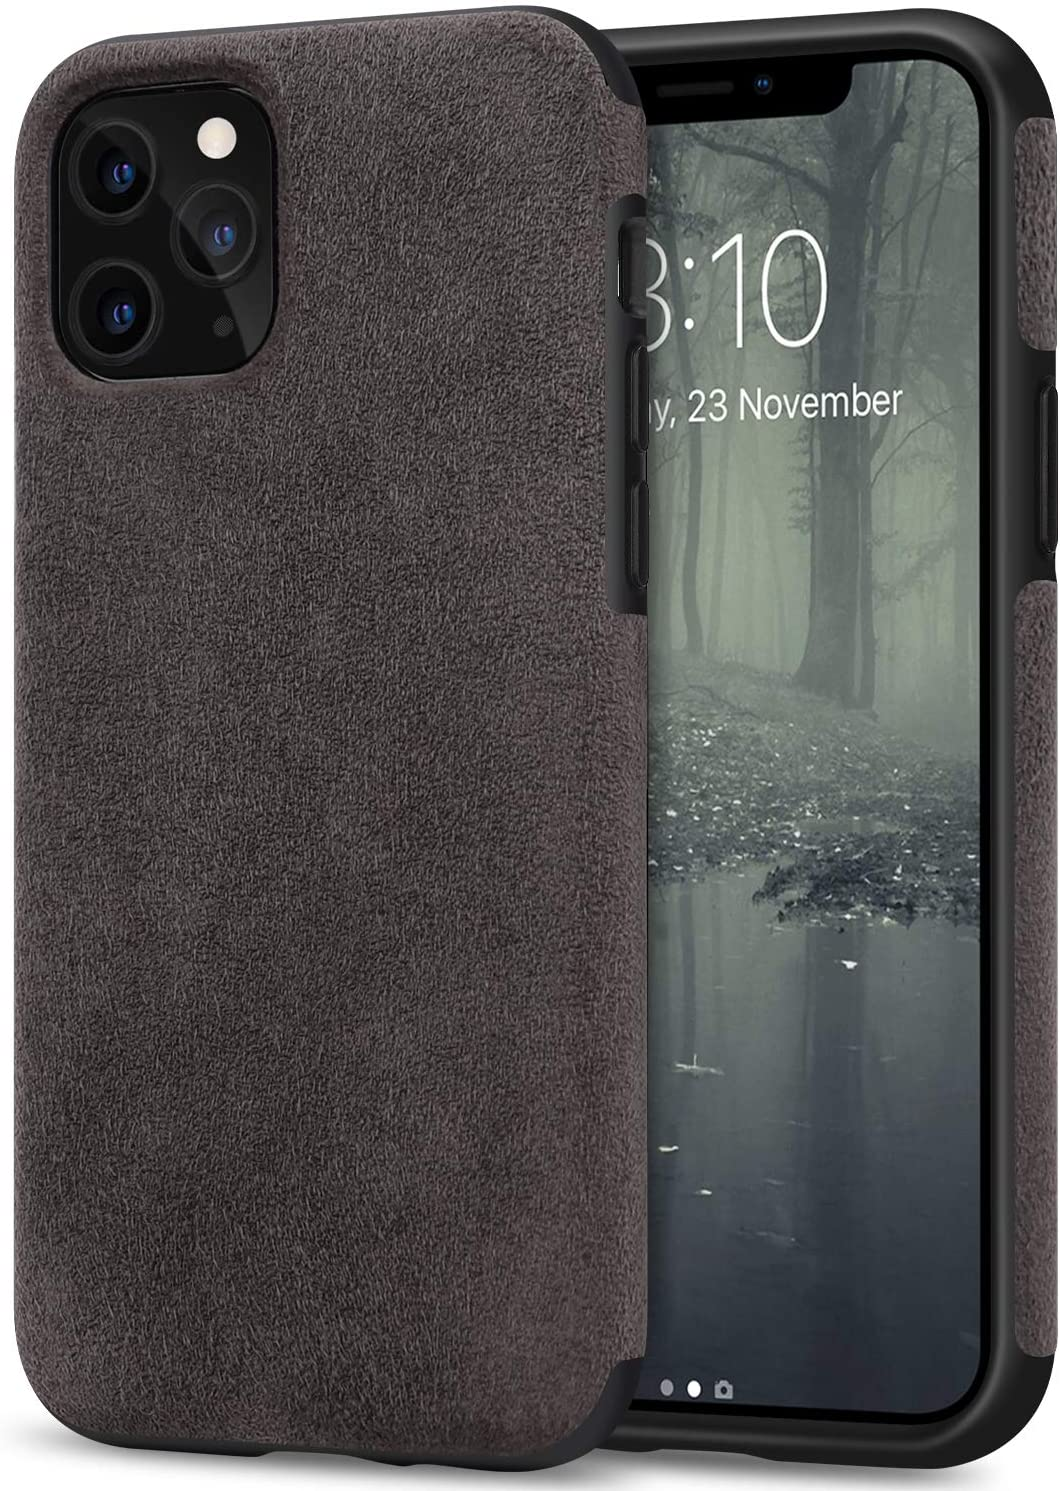 TENDLIN Compatible with iPhone 11 Pro Max Case Premium Suede-Like Material Design Leather Hybrid Comfortable Grip Case (Brown)